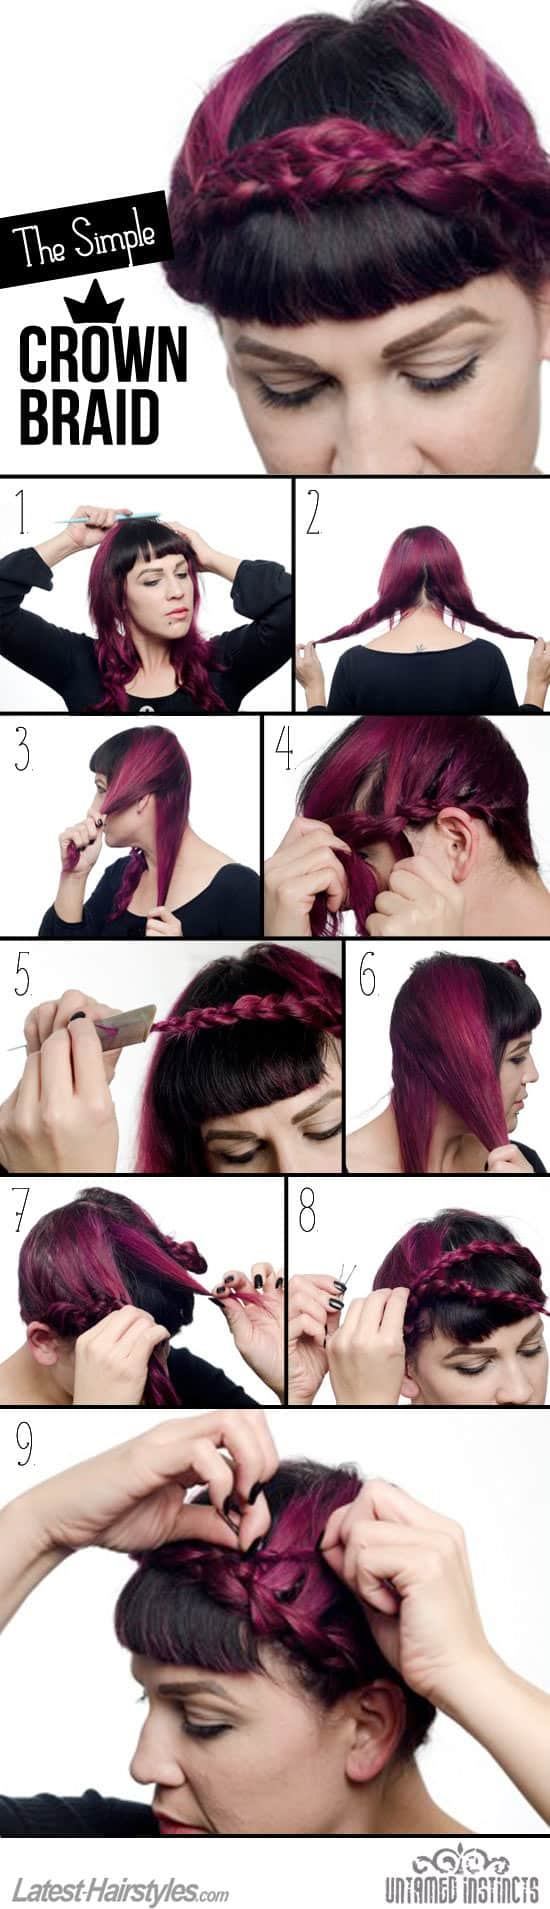 crown-braid-tutorial